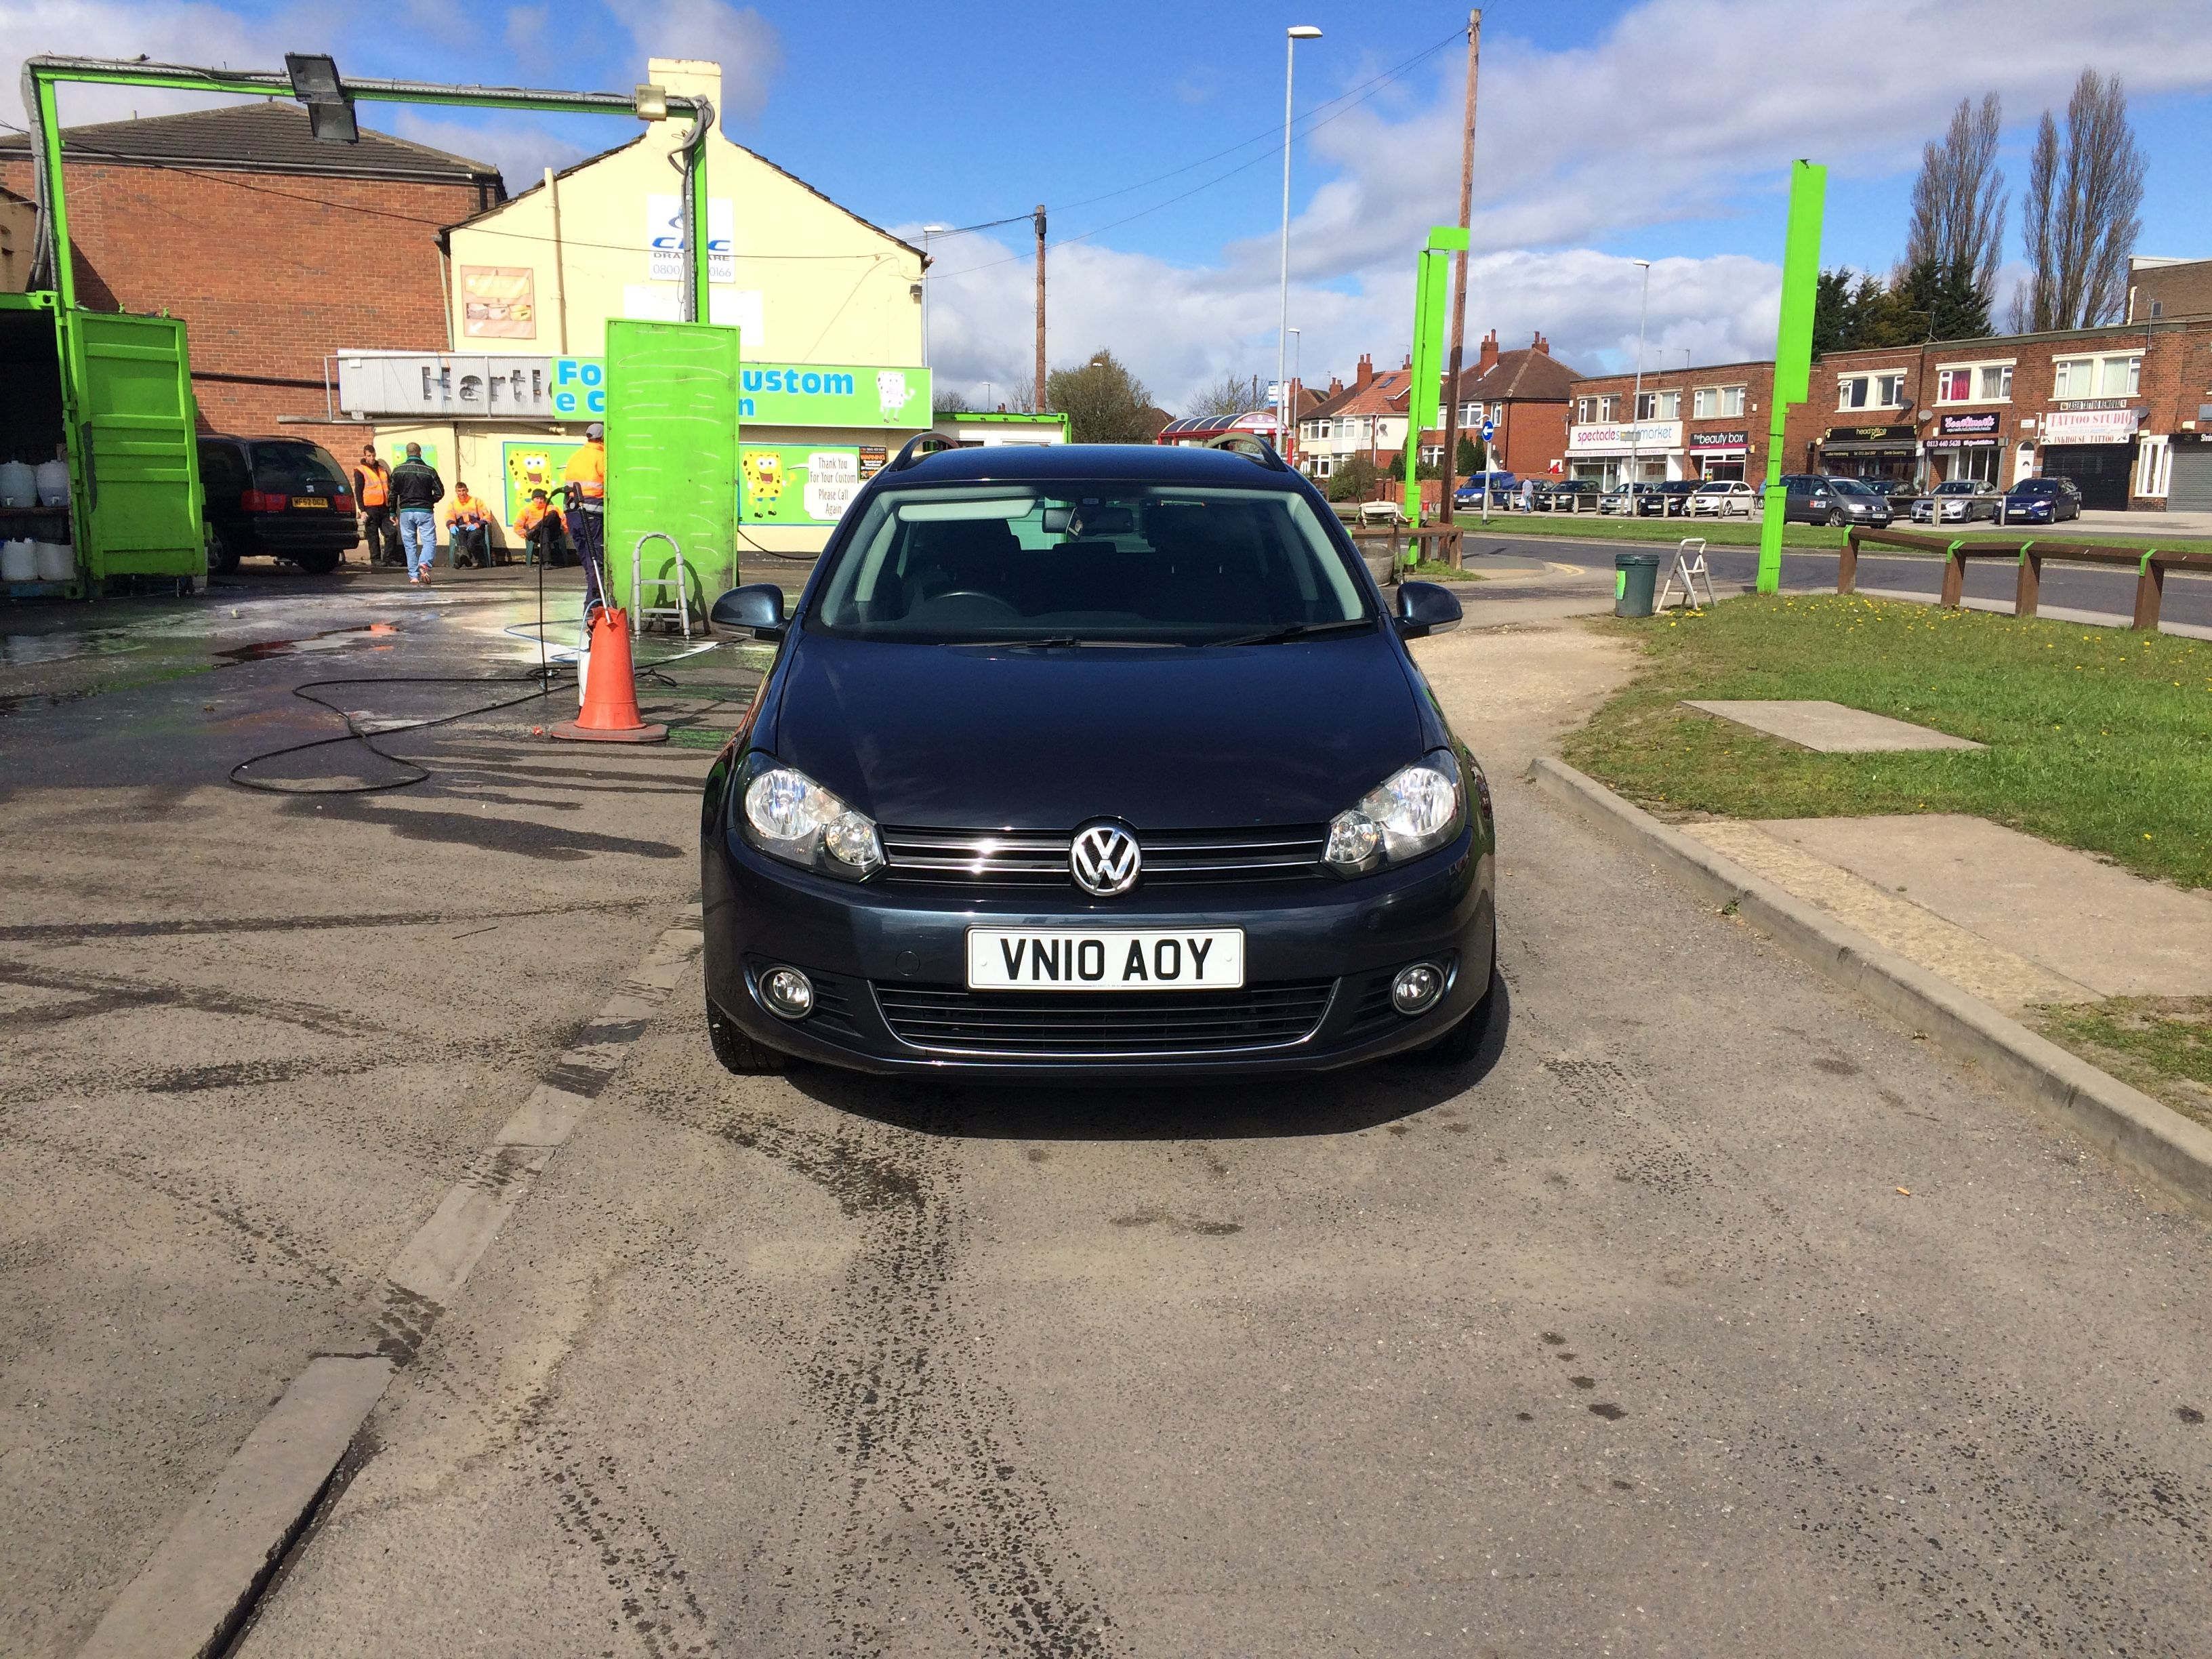 Used Cars for Elegant New Used Cars for Sale Leeds Pleasant to My Personal Blog with